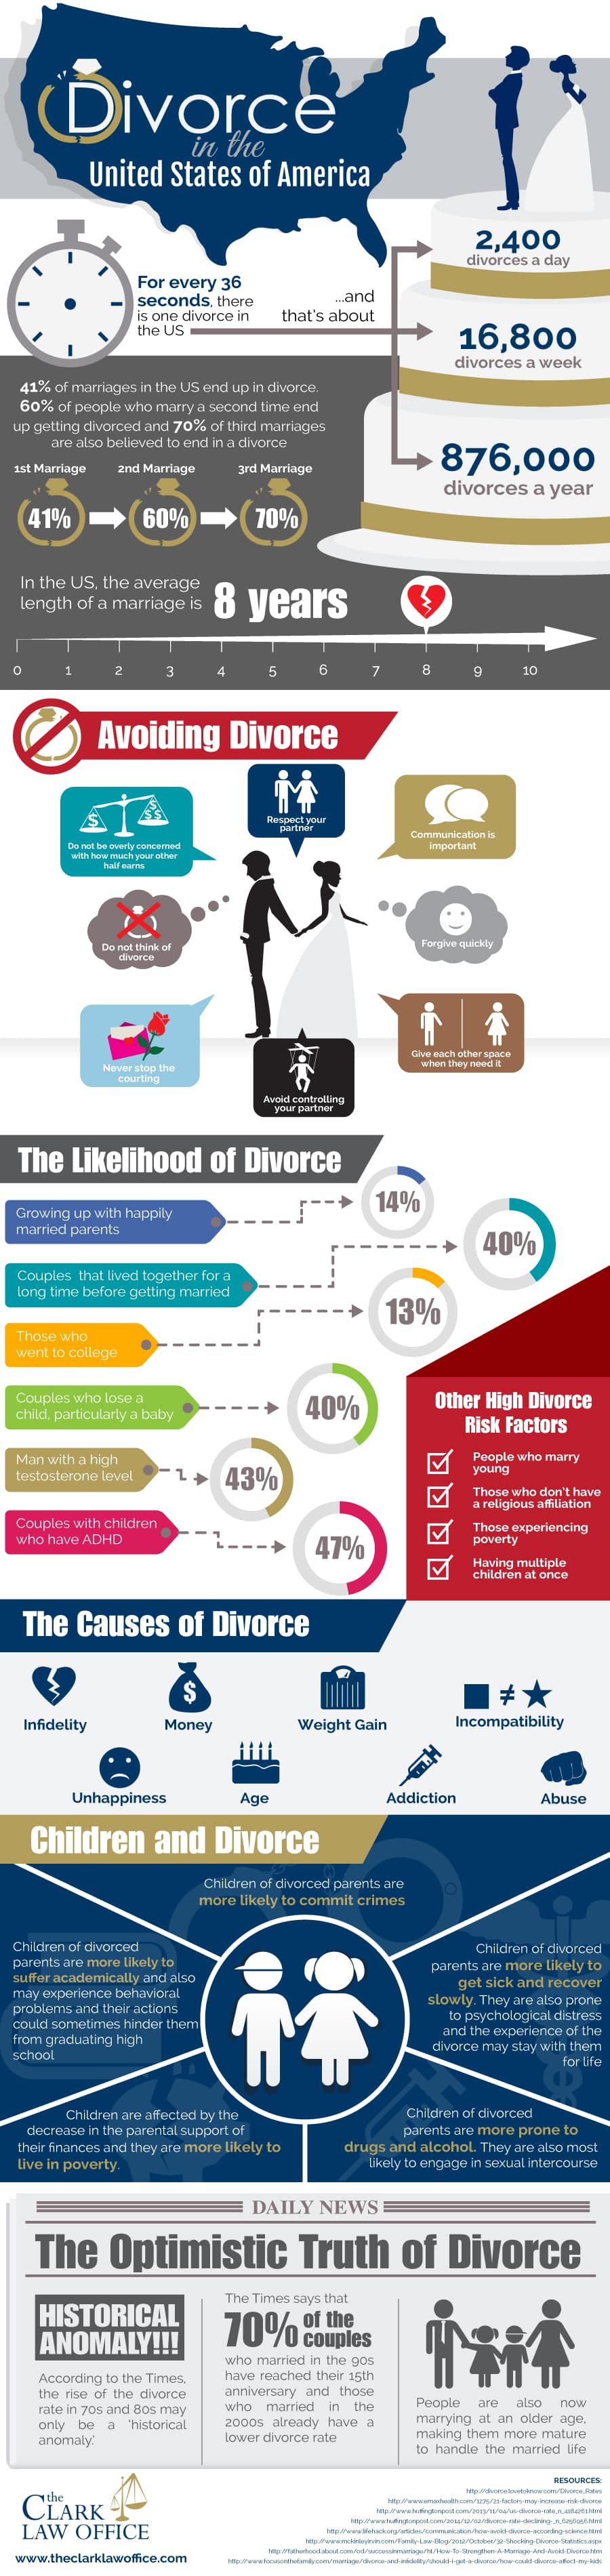 the factors leading to divorce in the united states The rise of divorce and separation in the united states  unmeasured intervening cultural factors are probably  that the rise of divorce and separation need.